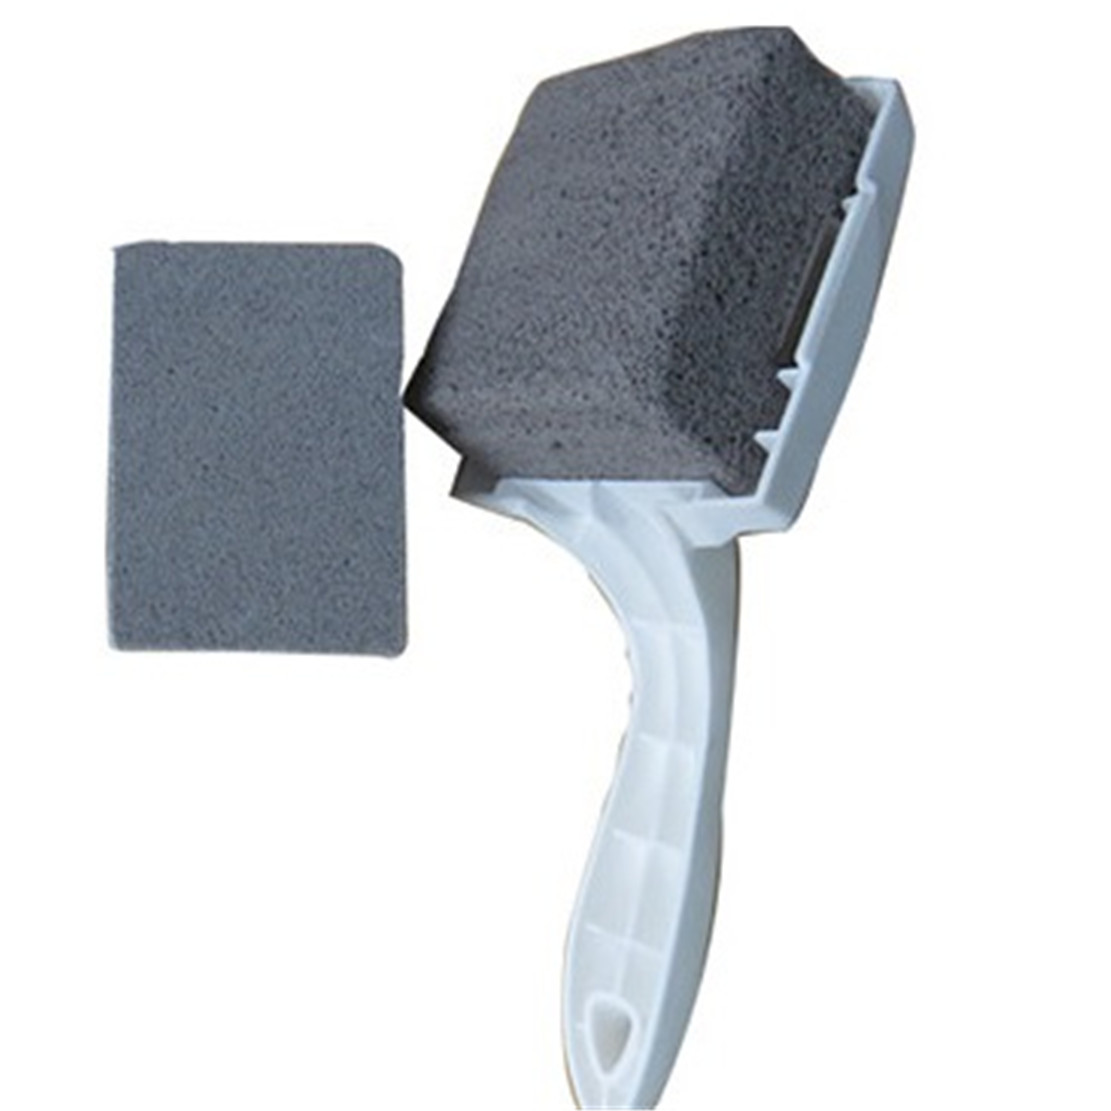 GrillStone Grill Cleaner with handle and cleaning stone